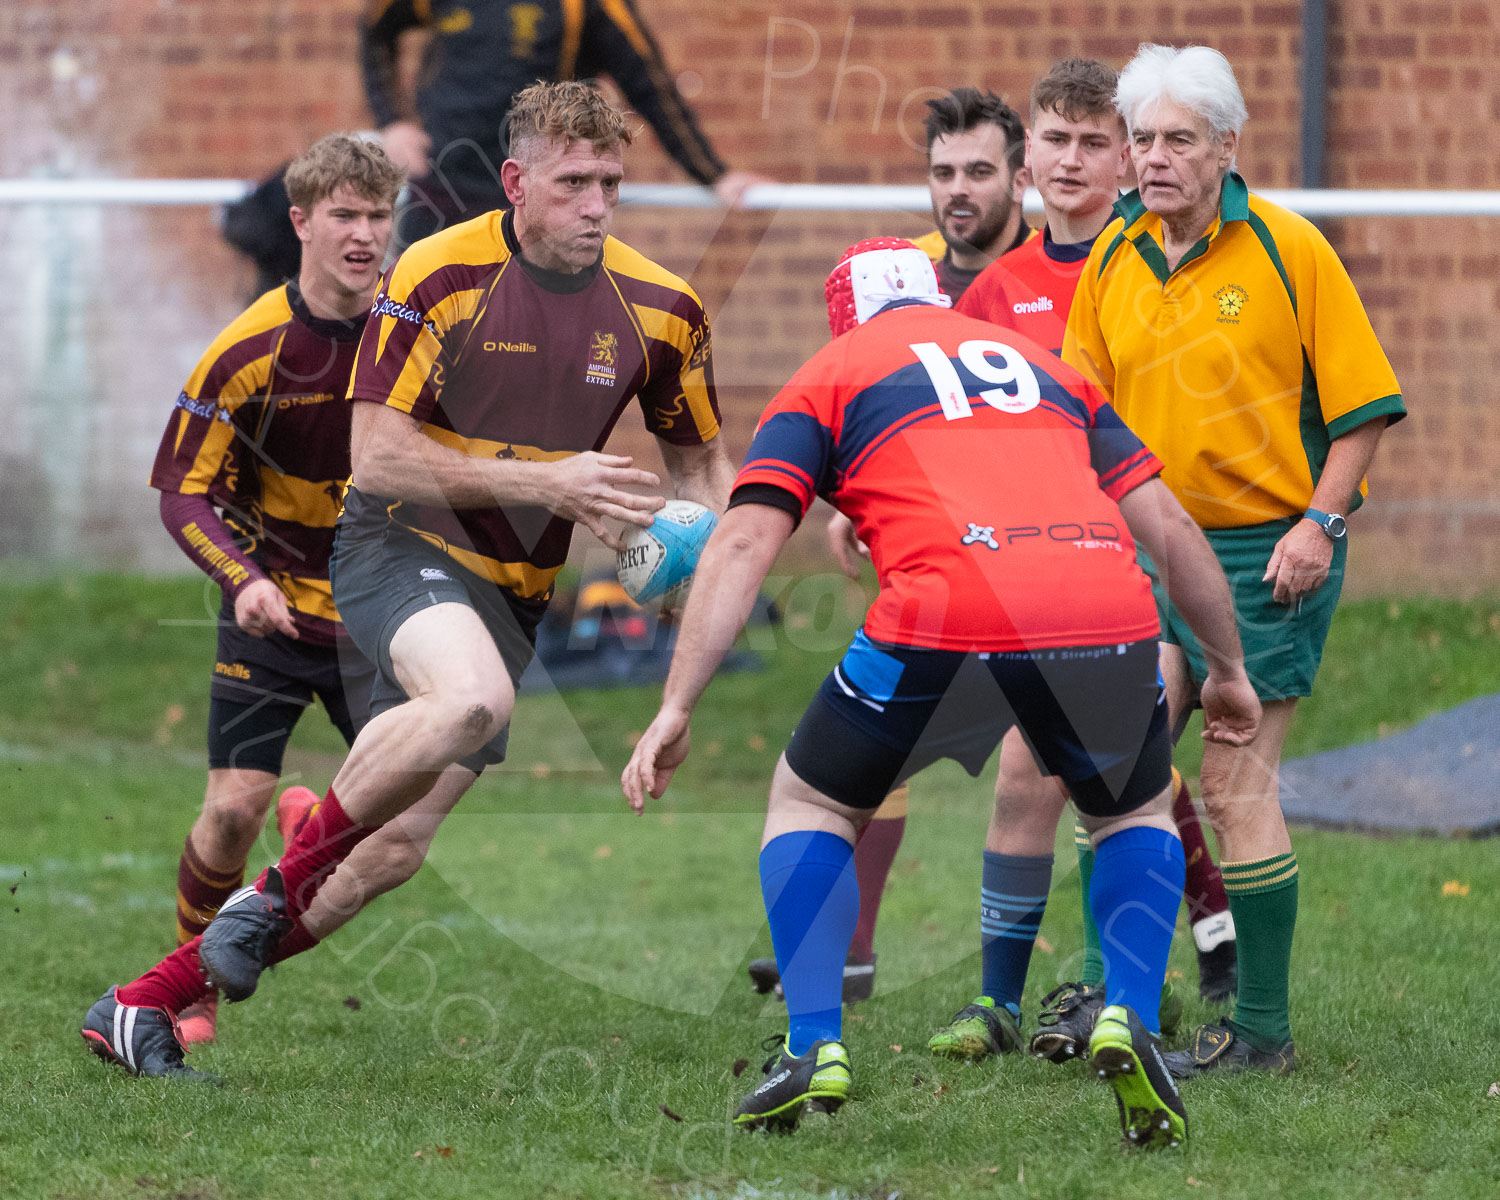 20181027 Amp Extras vs St Neots 2nd XV #2380